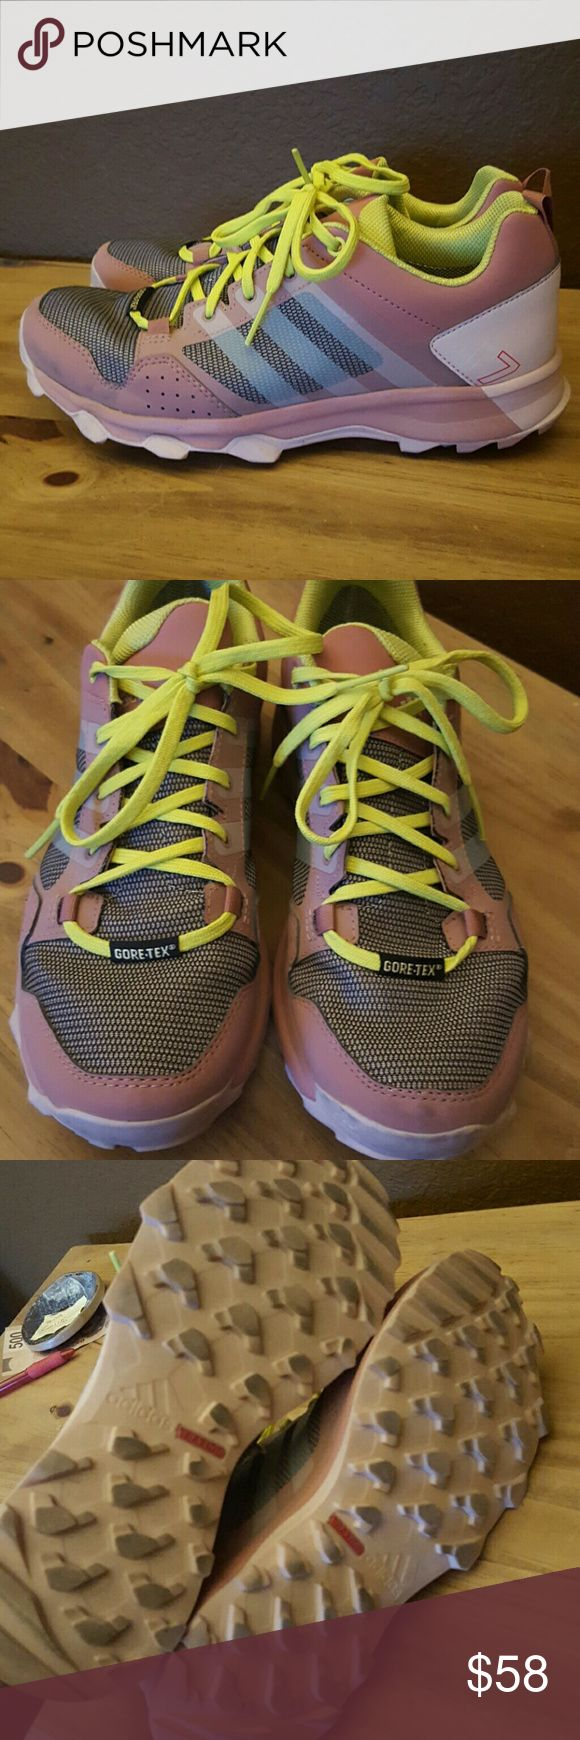 Adidas Kanadia Pink Trail Running Shoes Sz 7. Worn a handful of times and theyre too big. Adidas Shoes Athletic Shoes